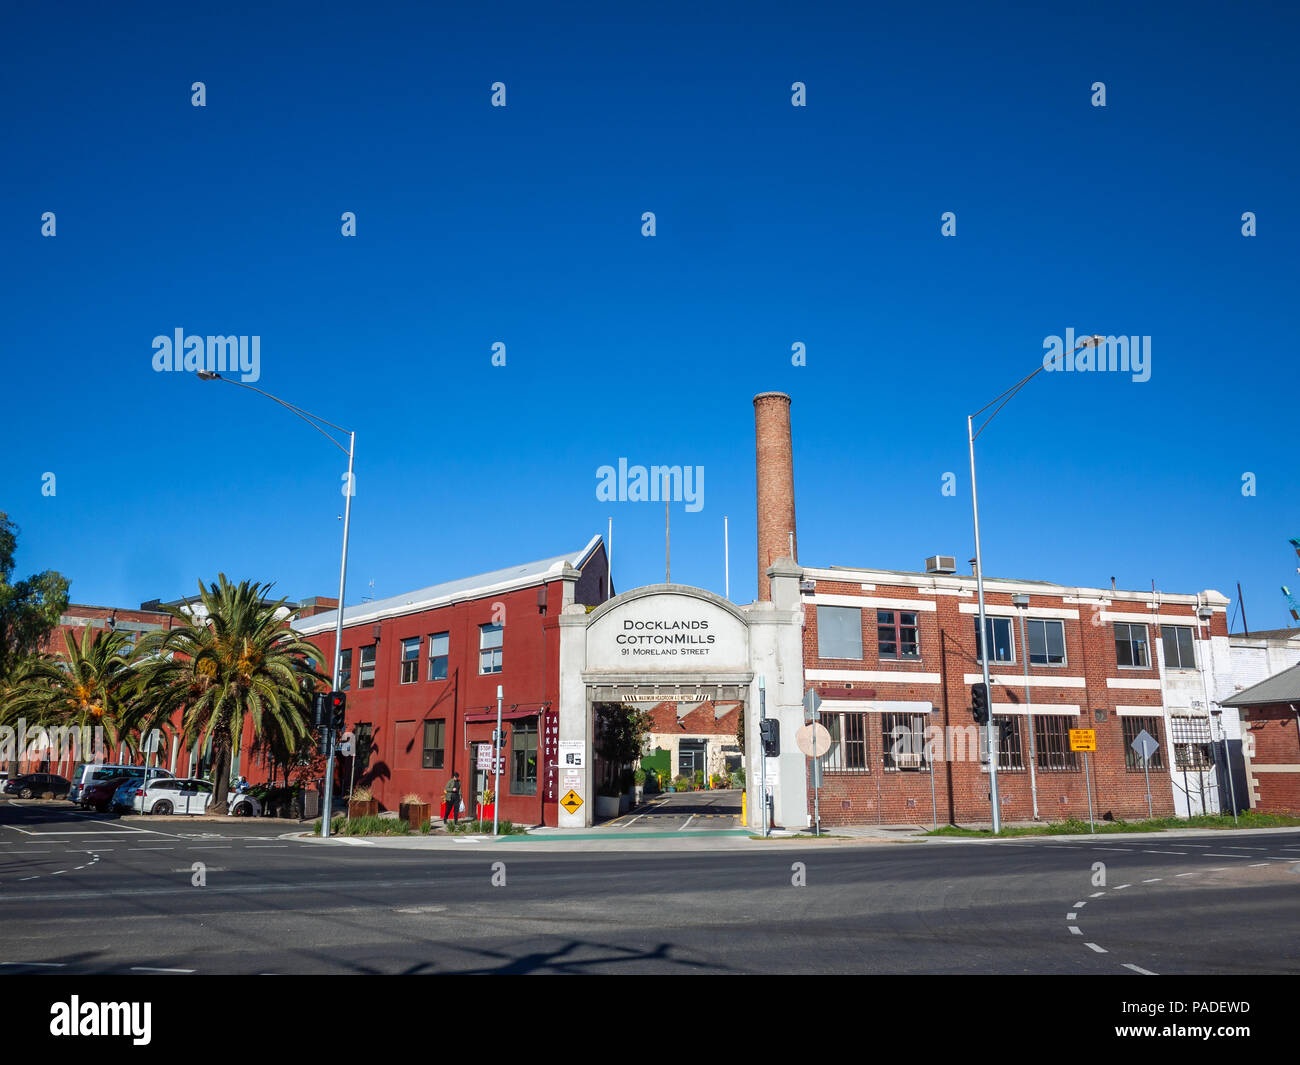 Building of Docklands Cotton Mills. The warehouse has been converted into a boutique development with a mix of commerce, IT and creative residents. - Stock Image